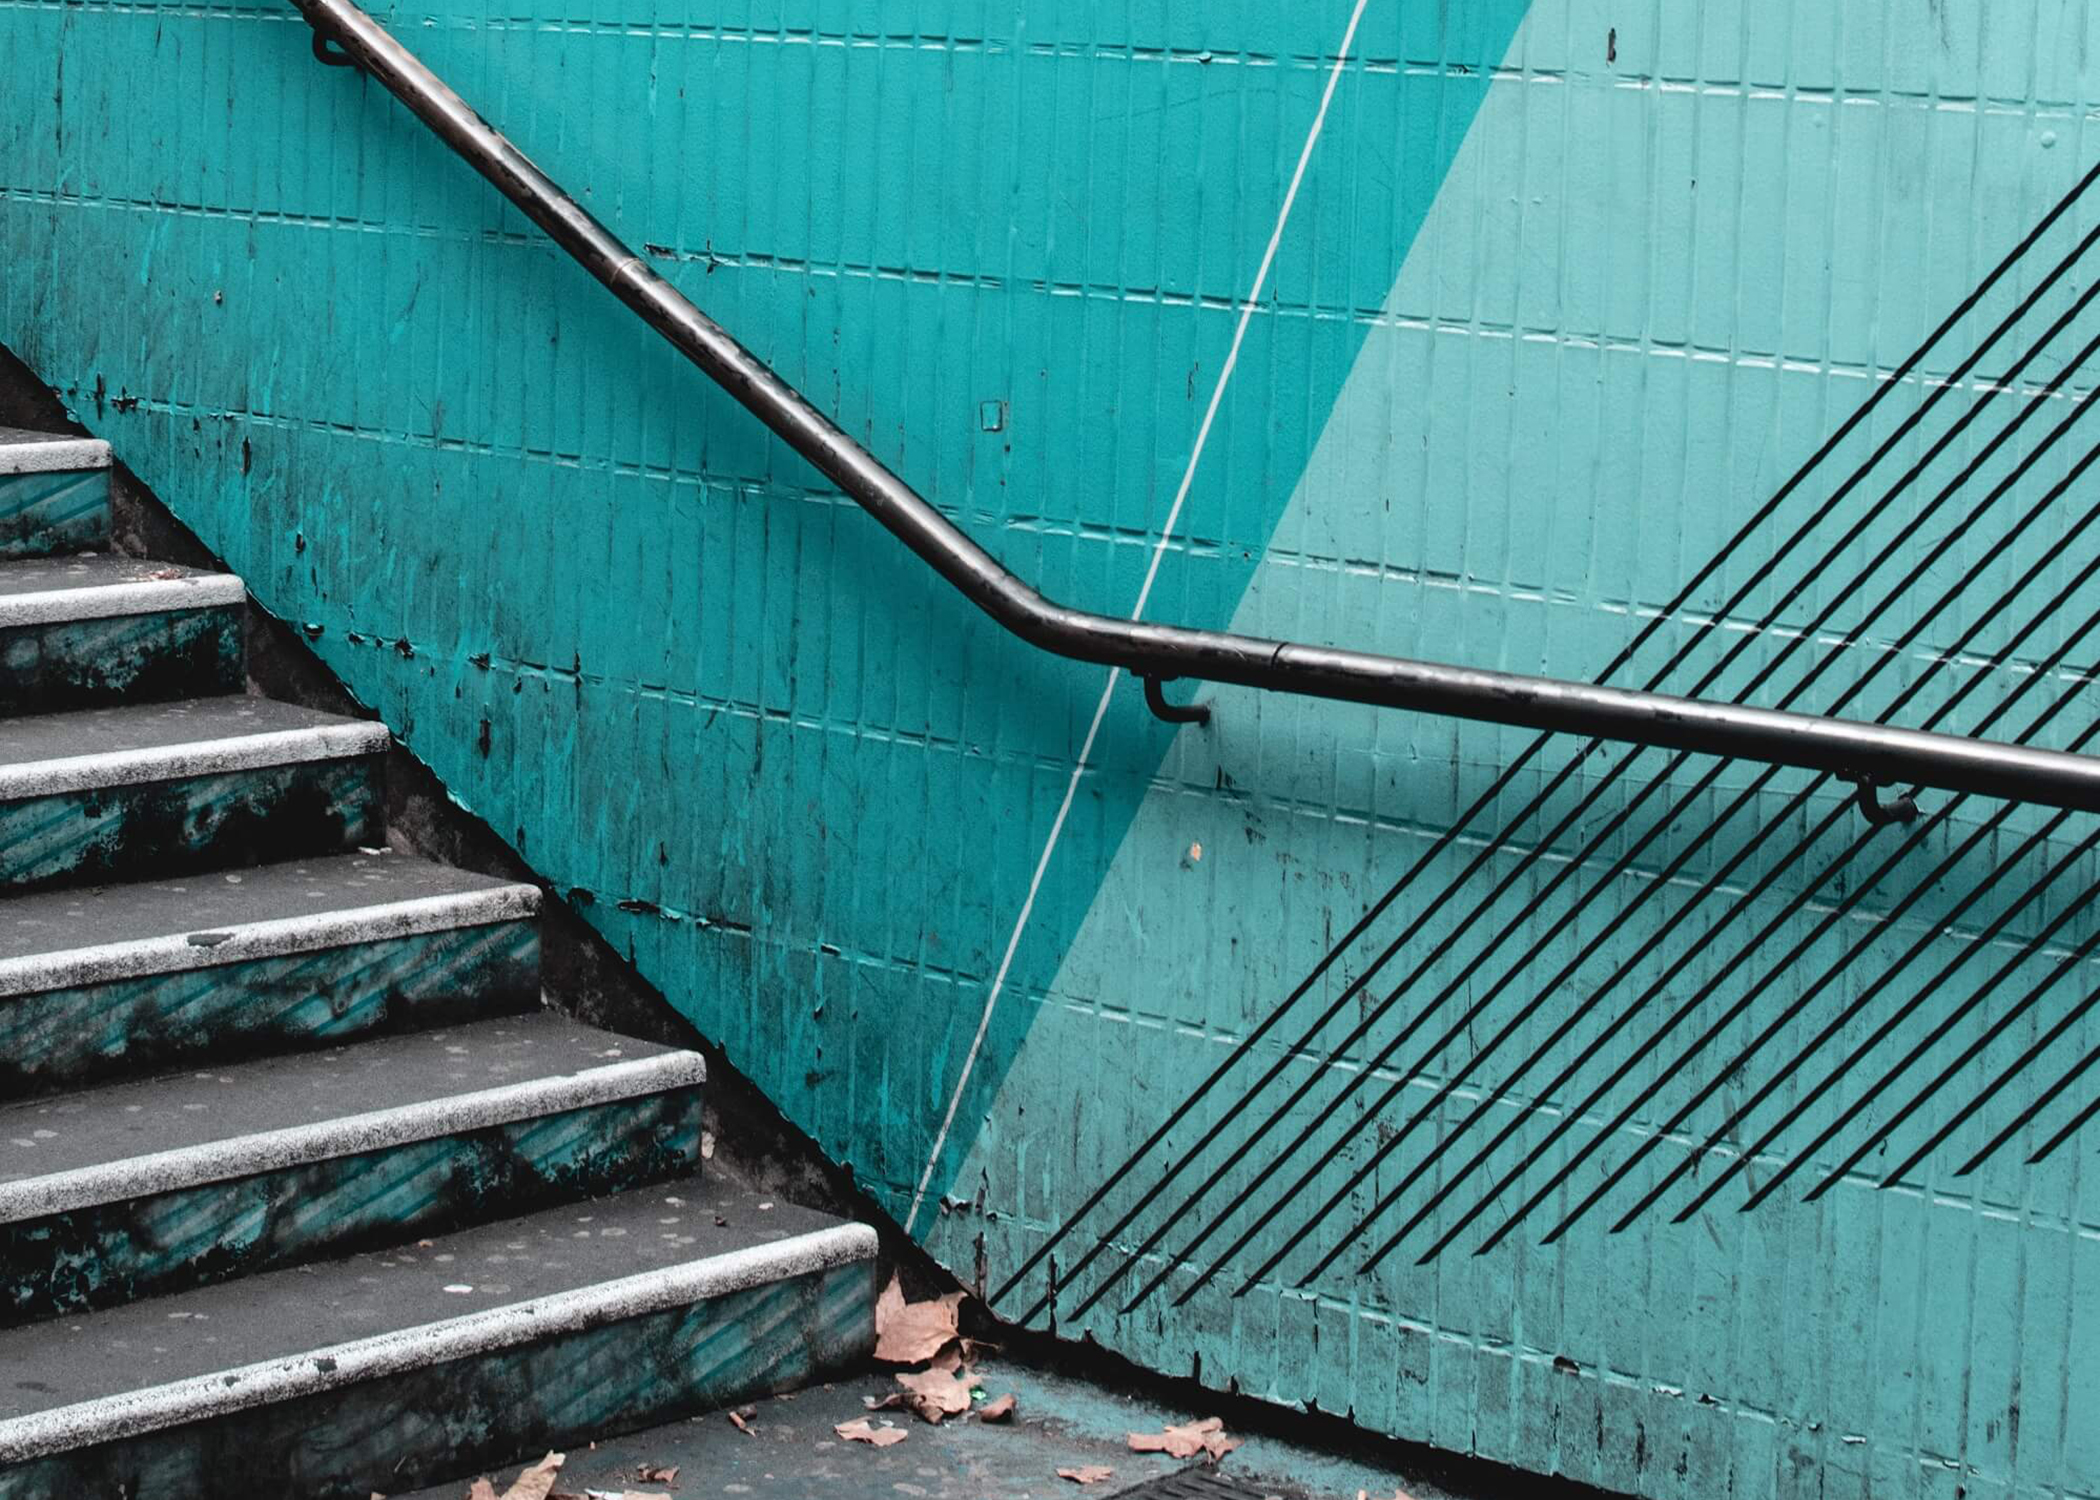 Dilapidated stairway leading up from a subway tunnel, painted turquoise.